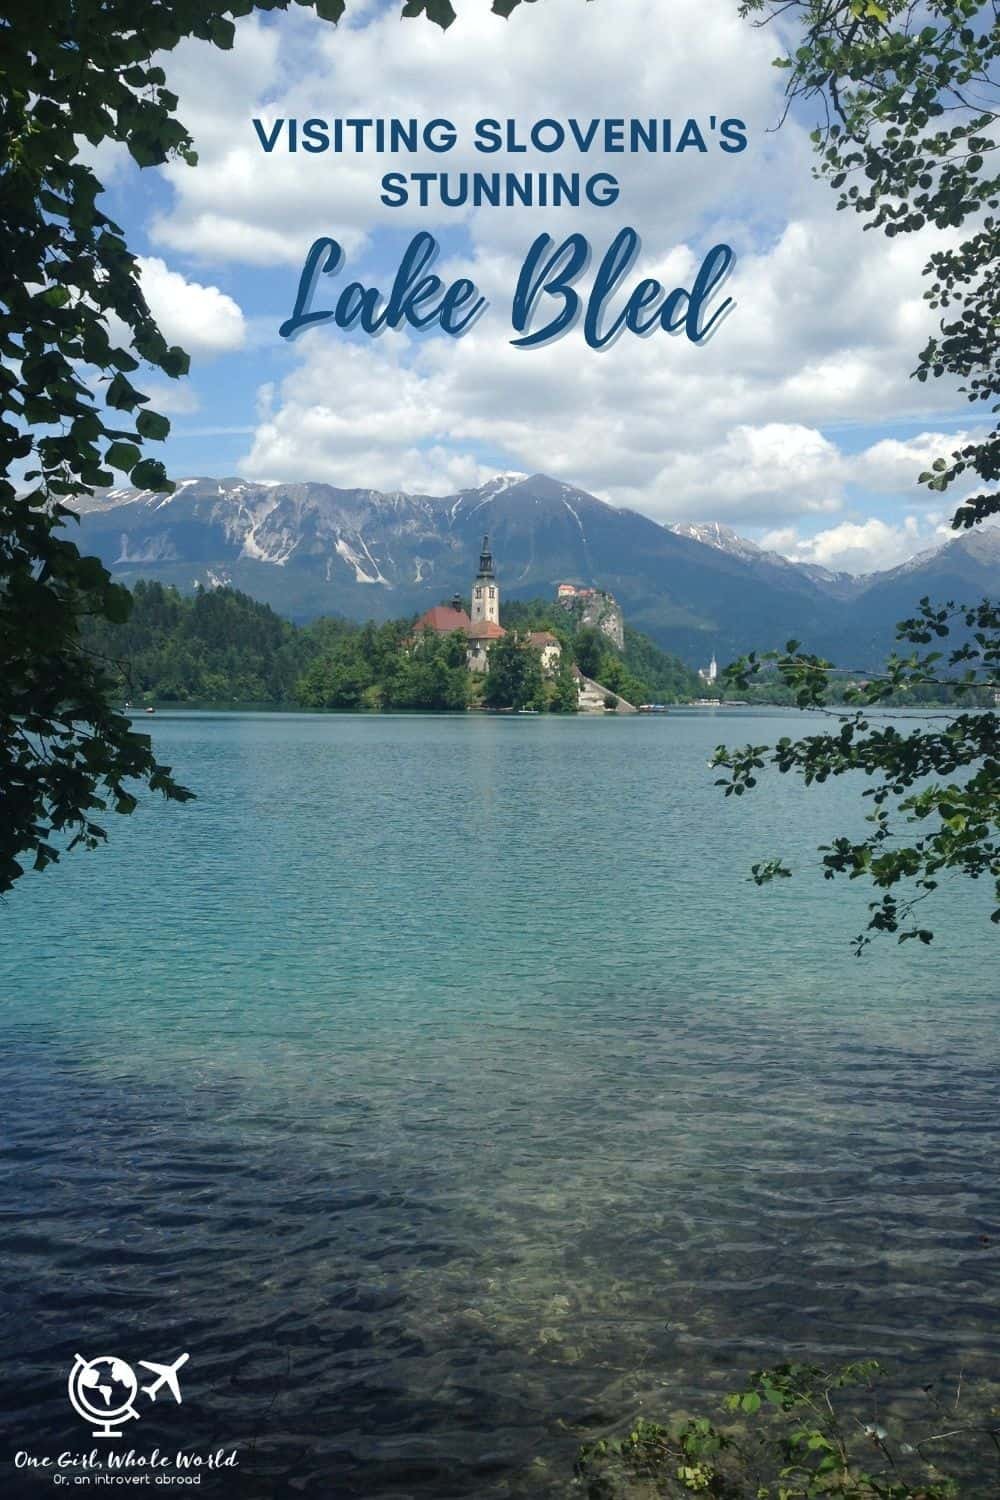 How to plan a trip to Slovenia's stunning Lake Bled and Lake Bohinj | What to do in Slovenia, how to visit Lake Bled. Tips for planning your visit, and why this beautiful lake should be on your must-list...the perfect Slovenian itinerary! #slovenia #lakebled #easterneurope